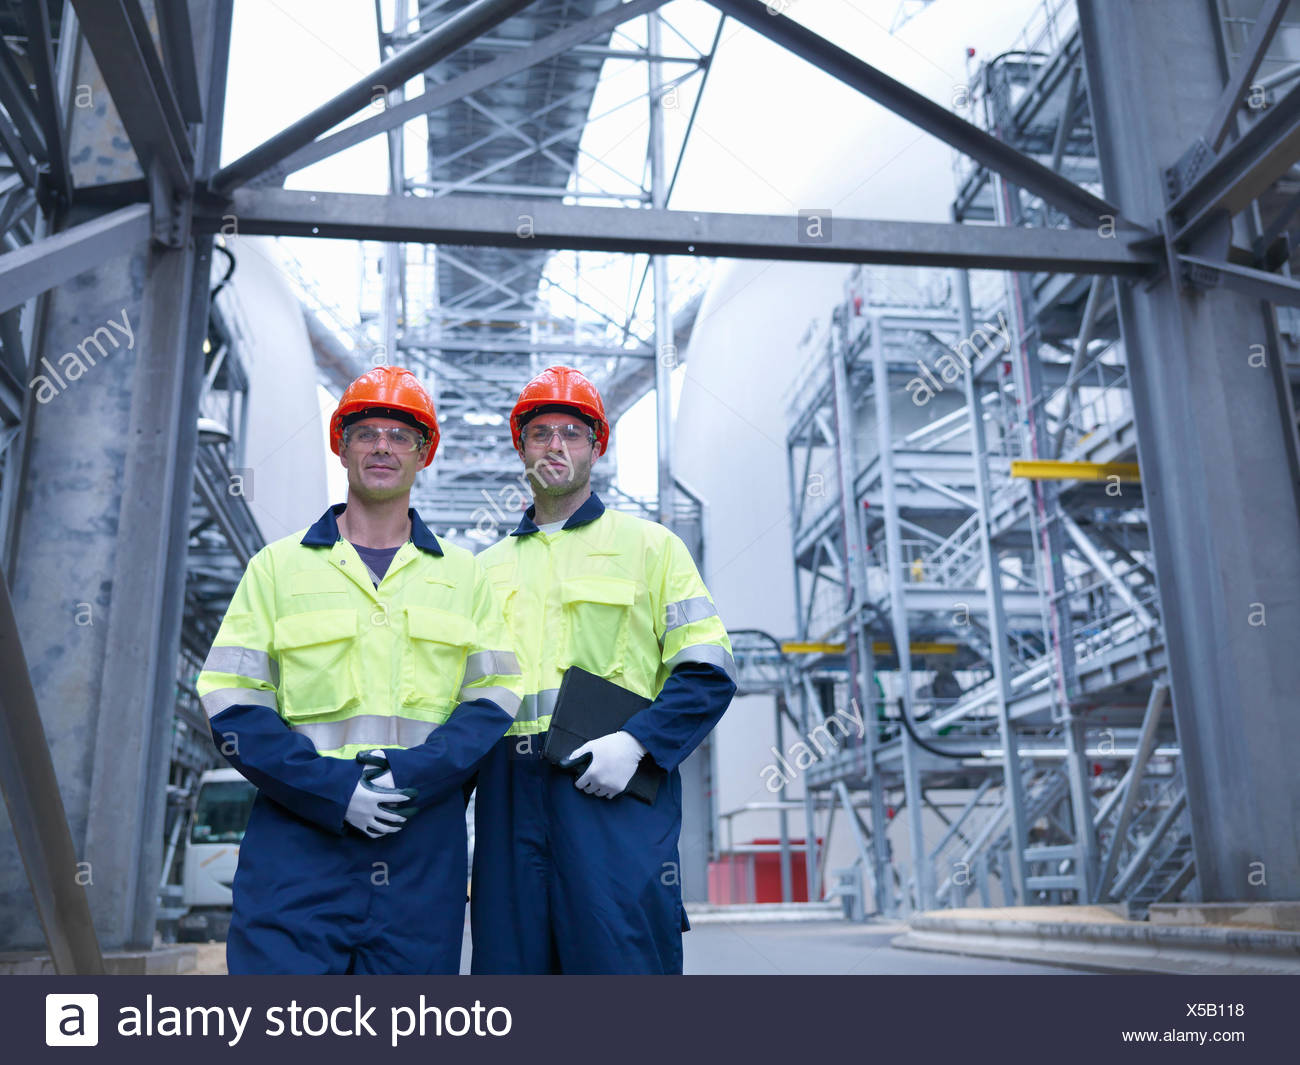 Portrait of workers in biomass facility - Stock Image